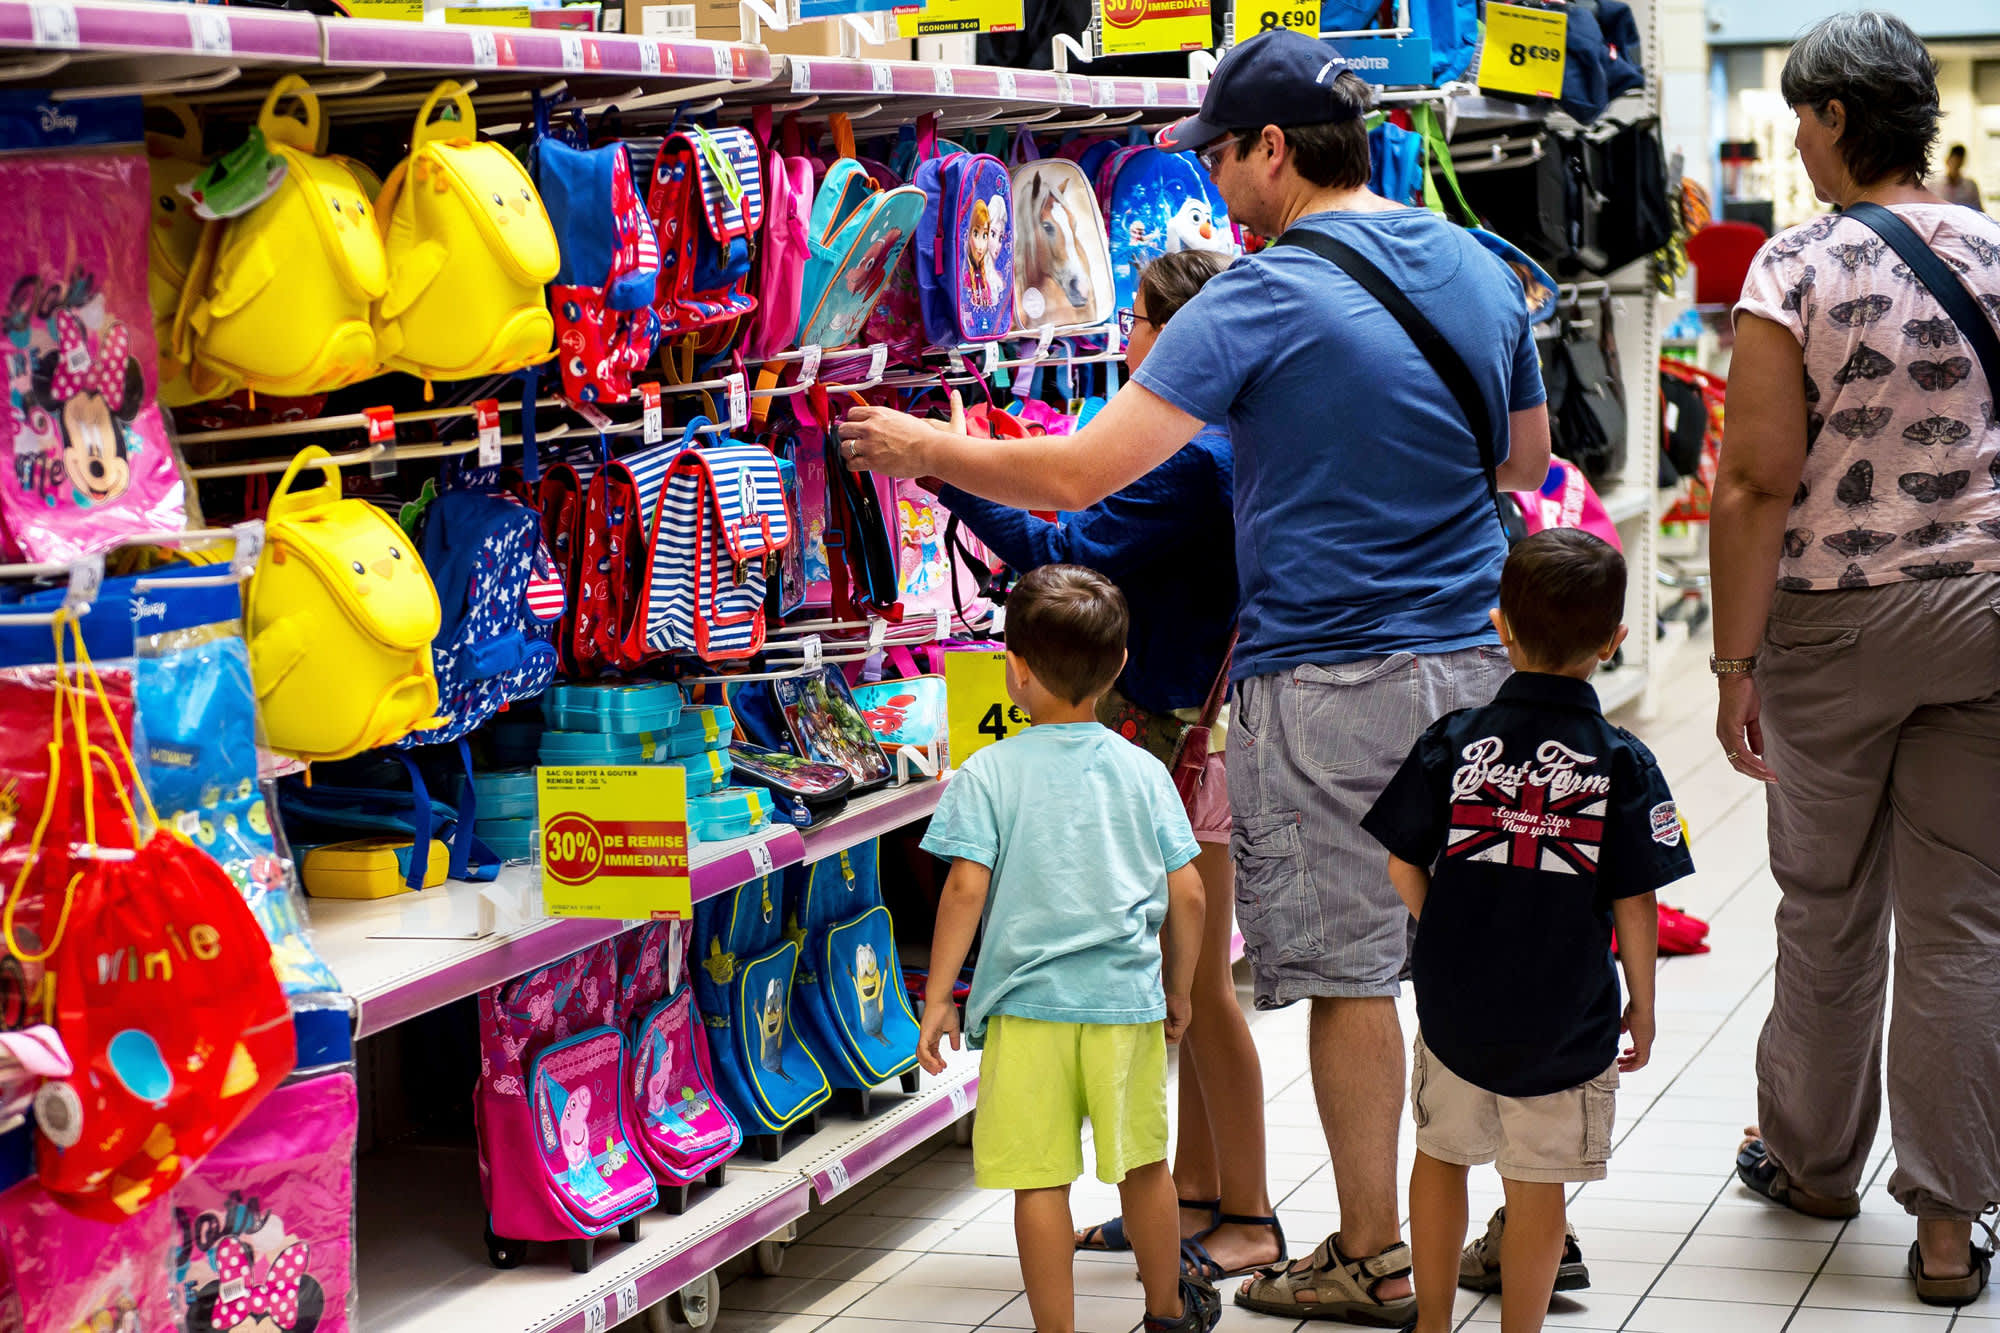 ac5c6b1e64 Advertisers take note of dads' larger role in back-to-school shopping